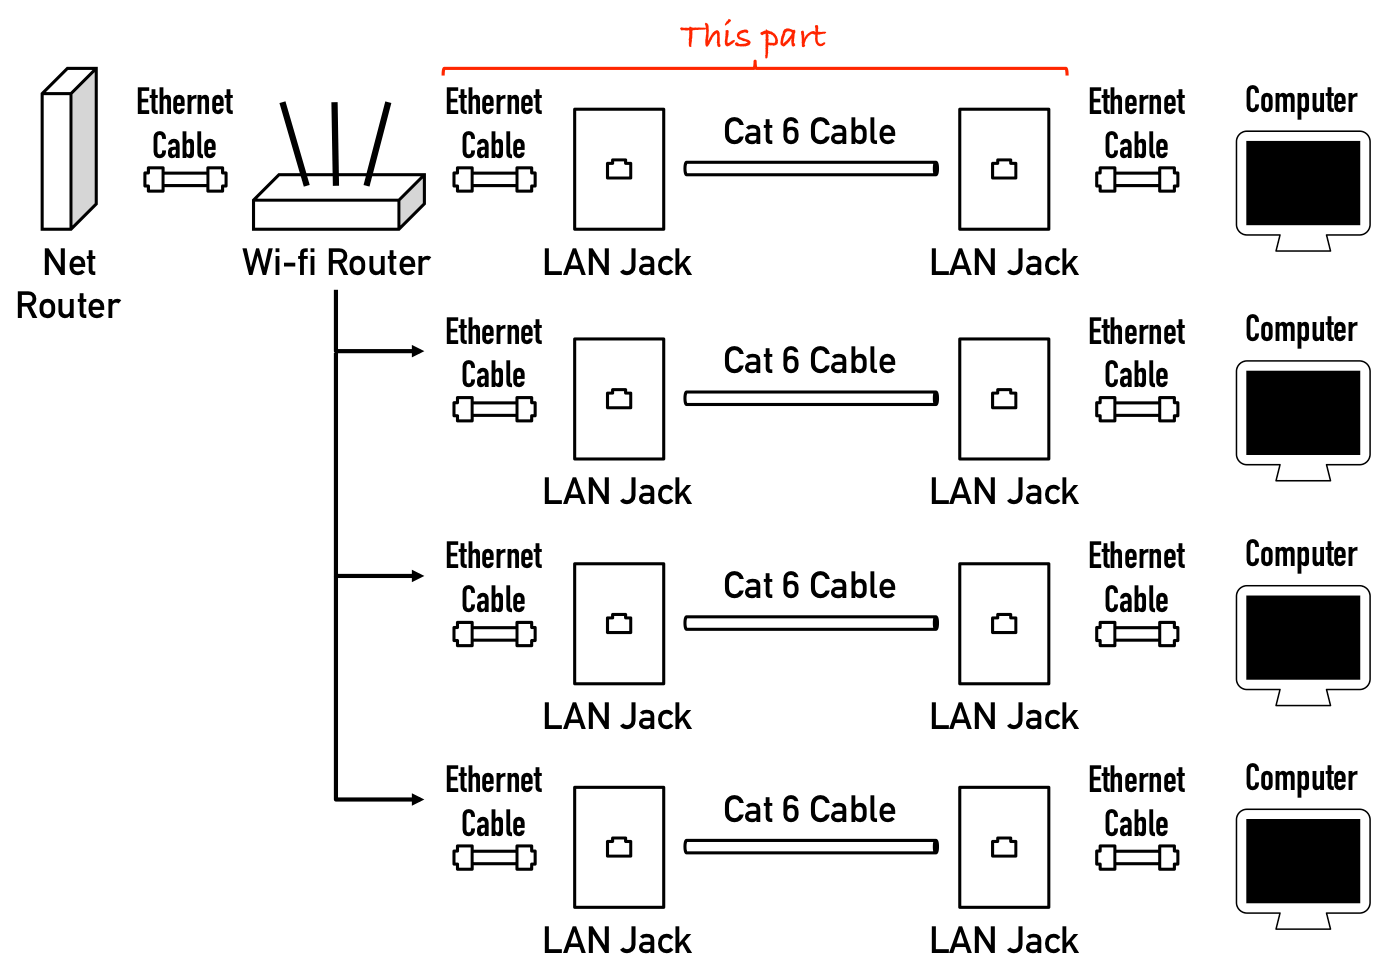 How Do I Run Wired Internet From A Single Router